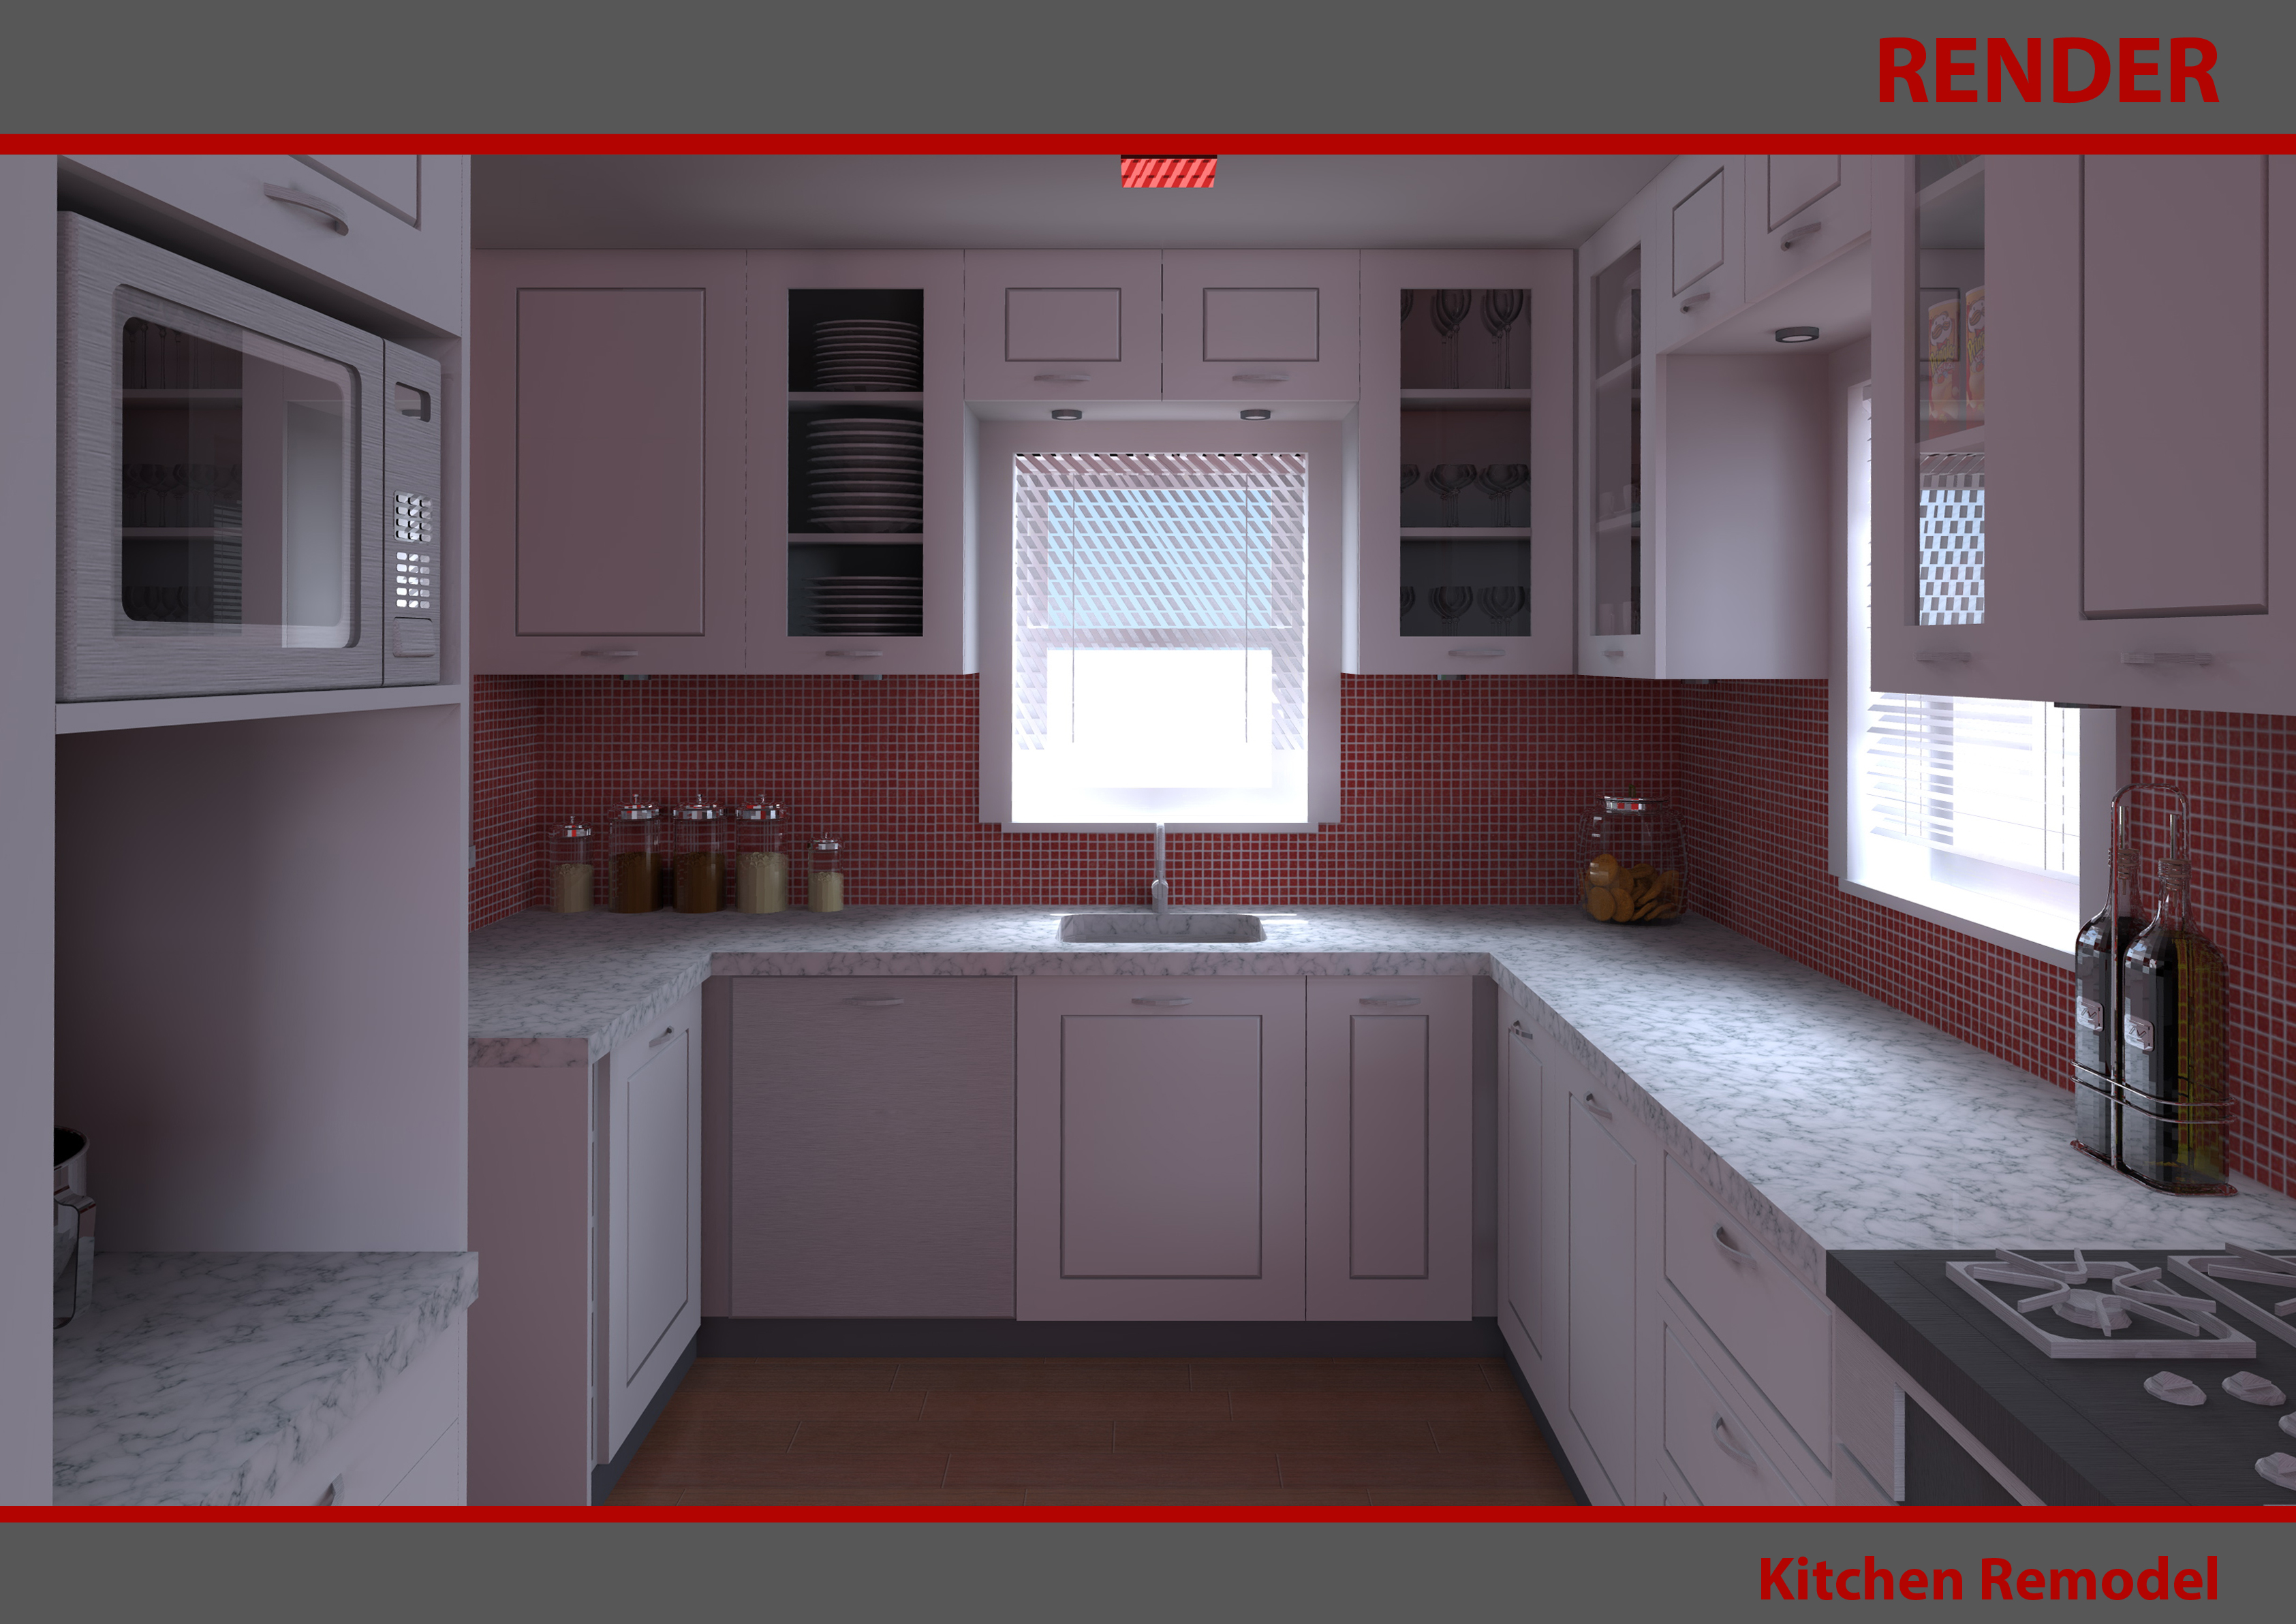 Kitchen Design Project Designed By Mg Architect Studio Kitchen Remodel Kansas City Missouri